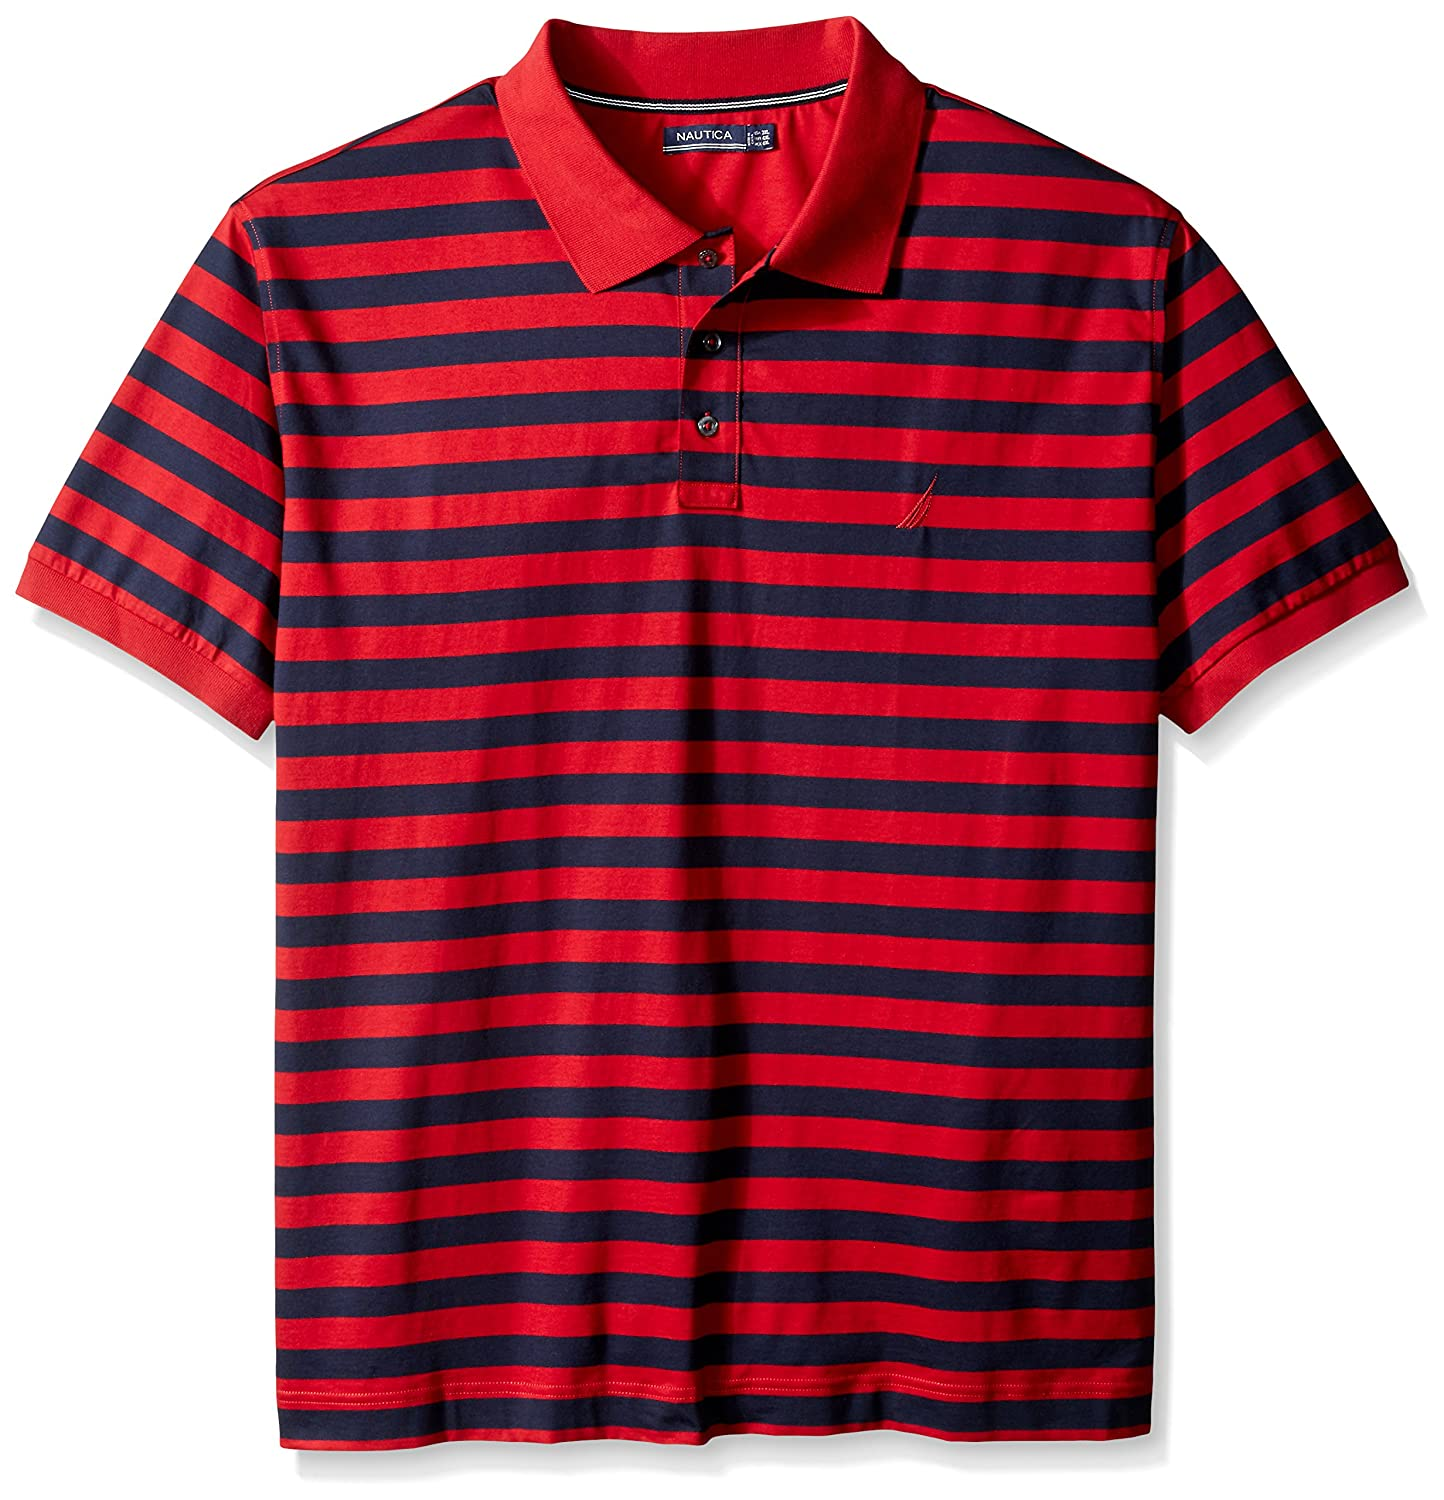 Nautica Men s Big & Tall Rayas Polo para Hombre - Rojo -: Amazon ...